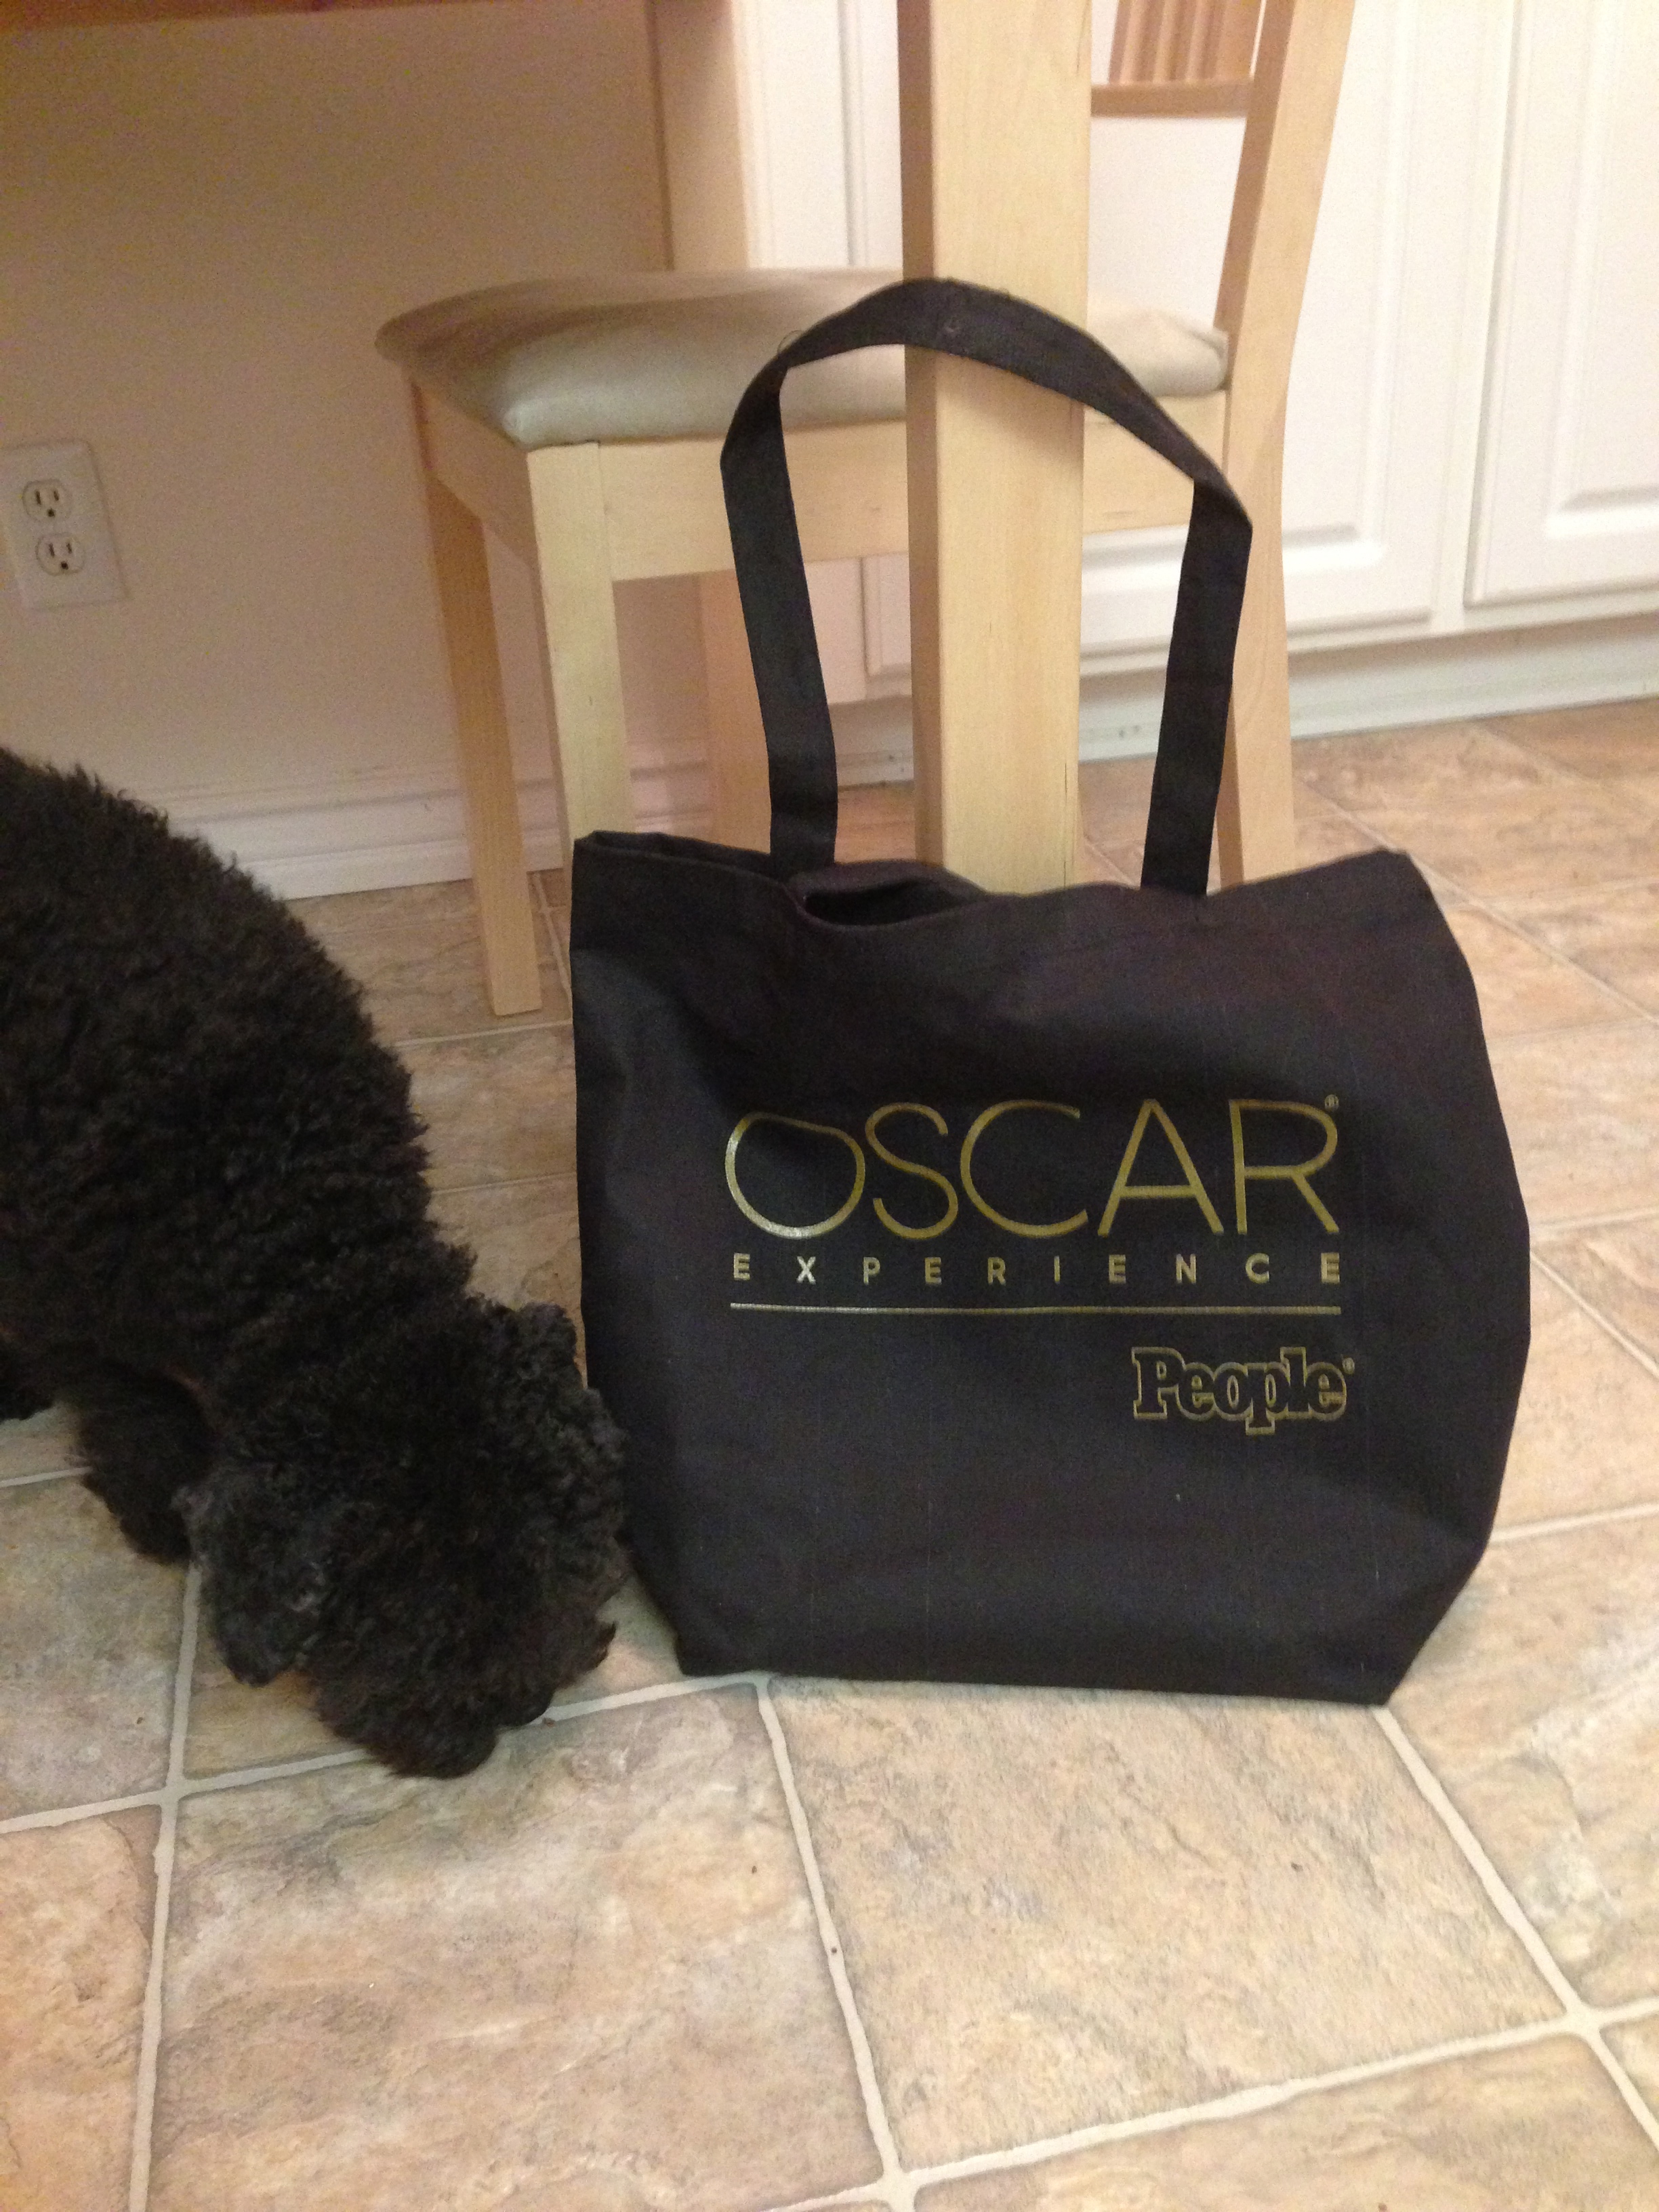 The Oscar Red Carpet Experience Food And Gift Bag